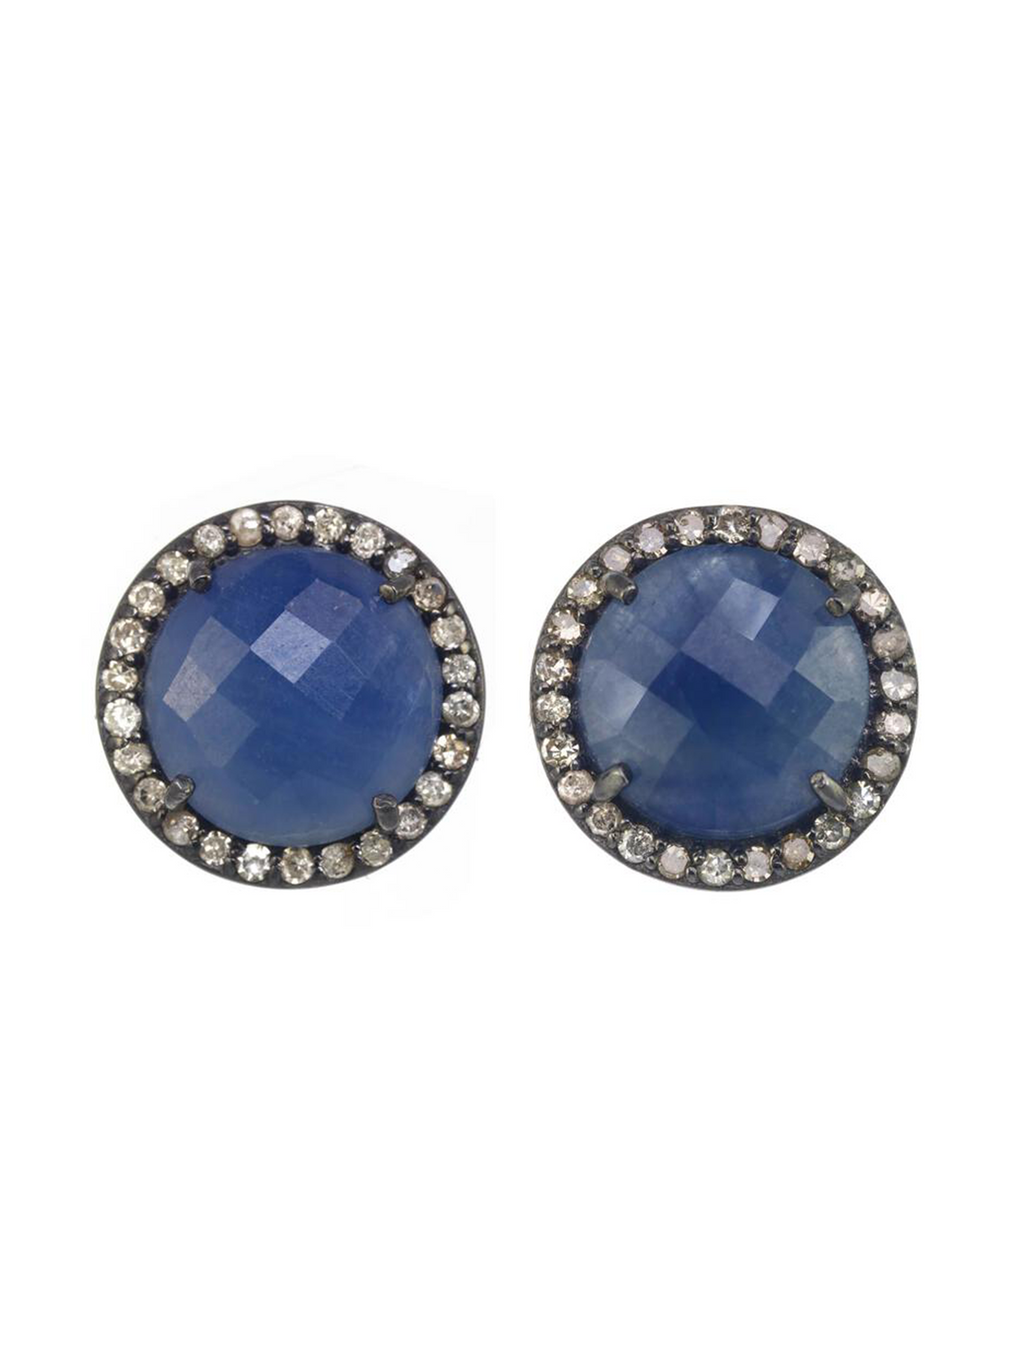 Margo Morrison Faceted Blue Sapphire and Diamond Stud Earrings